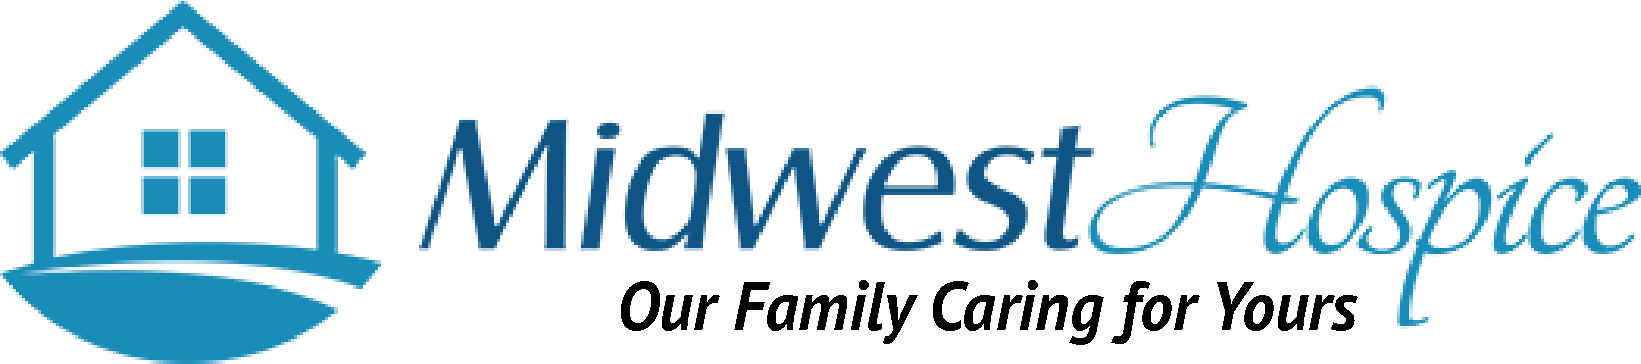 Midwest Hospice | Serving Greater Cincinnati